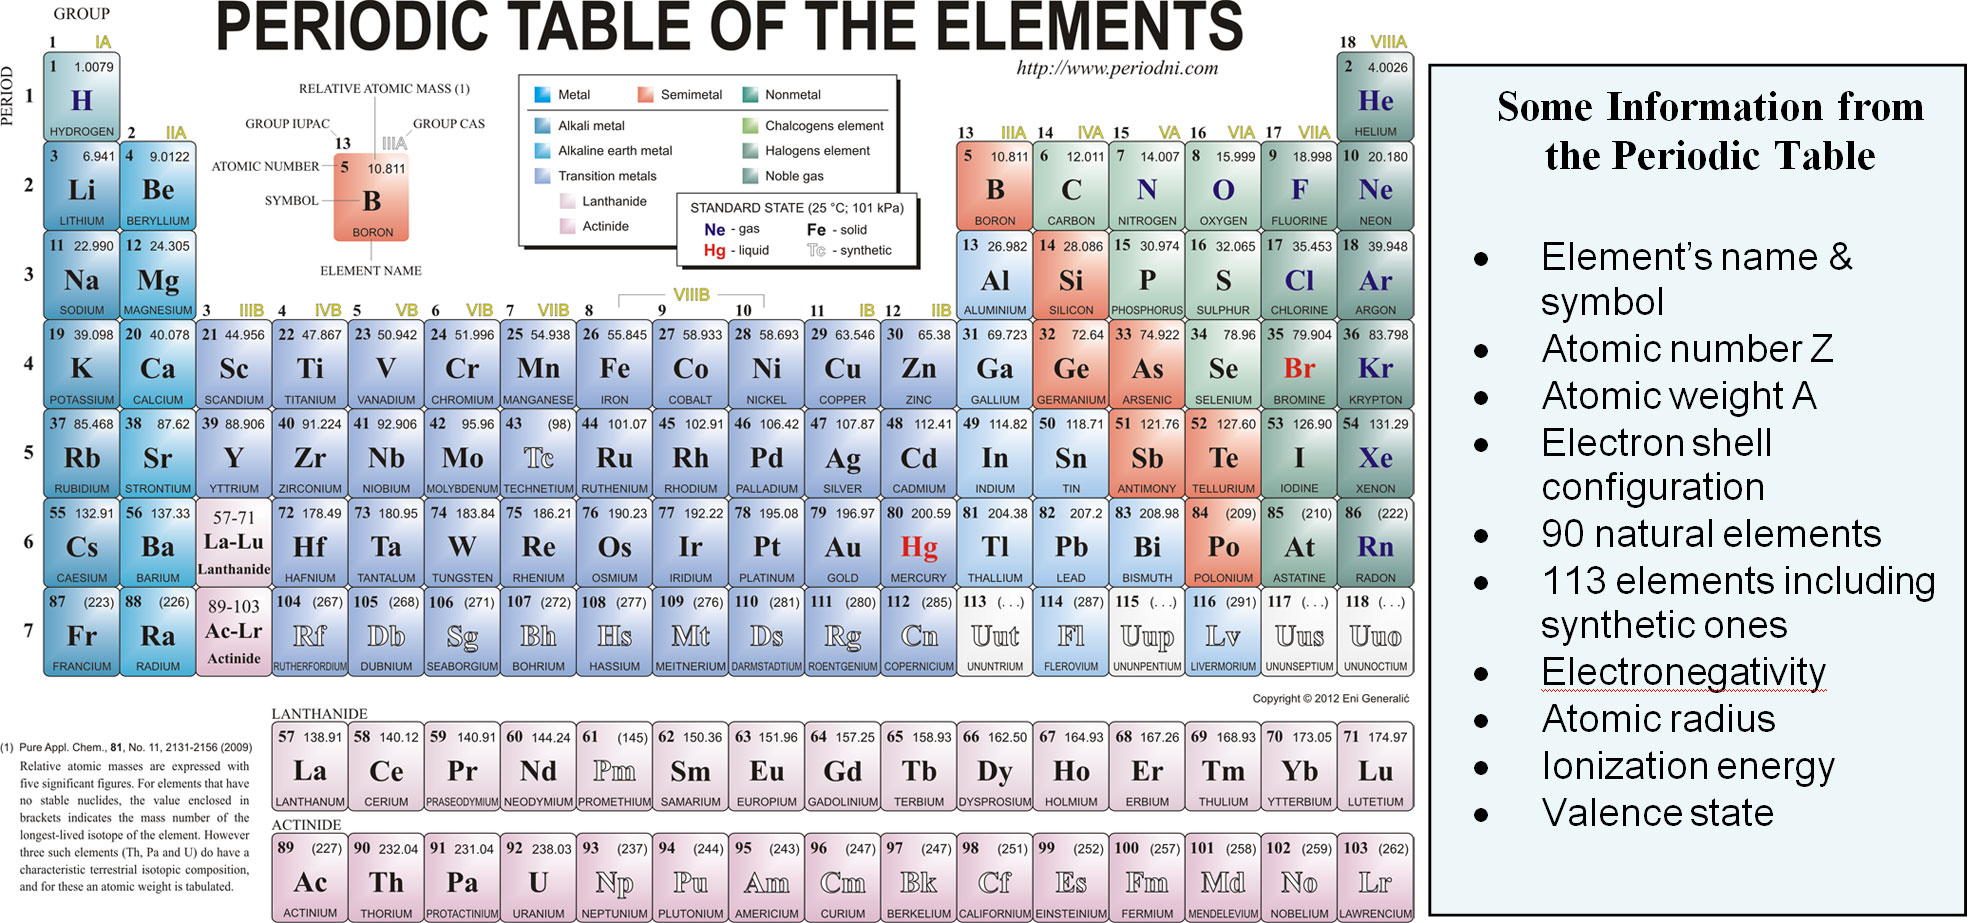 Atoms and gods order creation atomic mass density and melting point periodic table urtaz Image collections